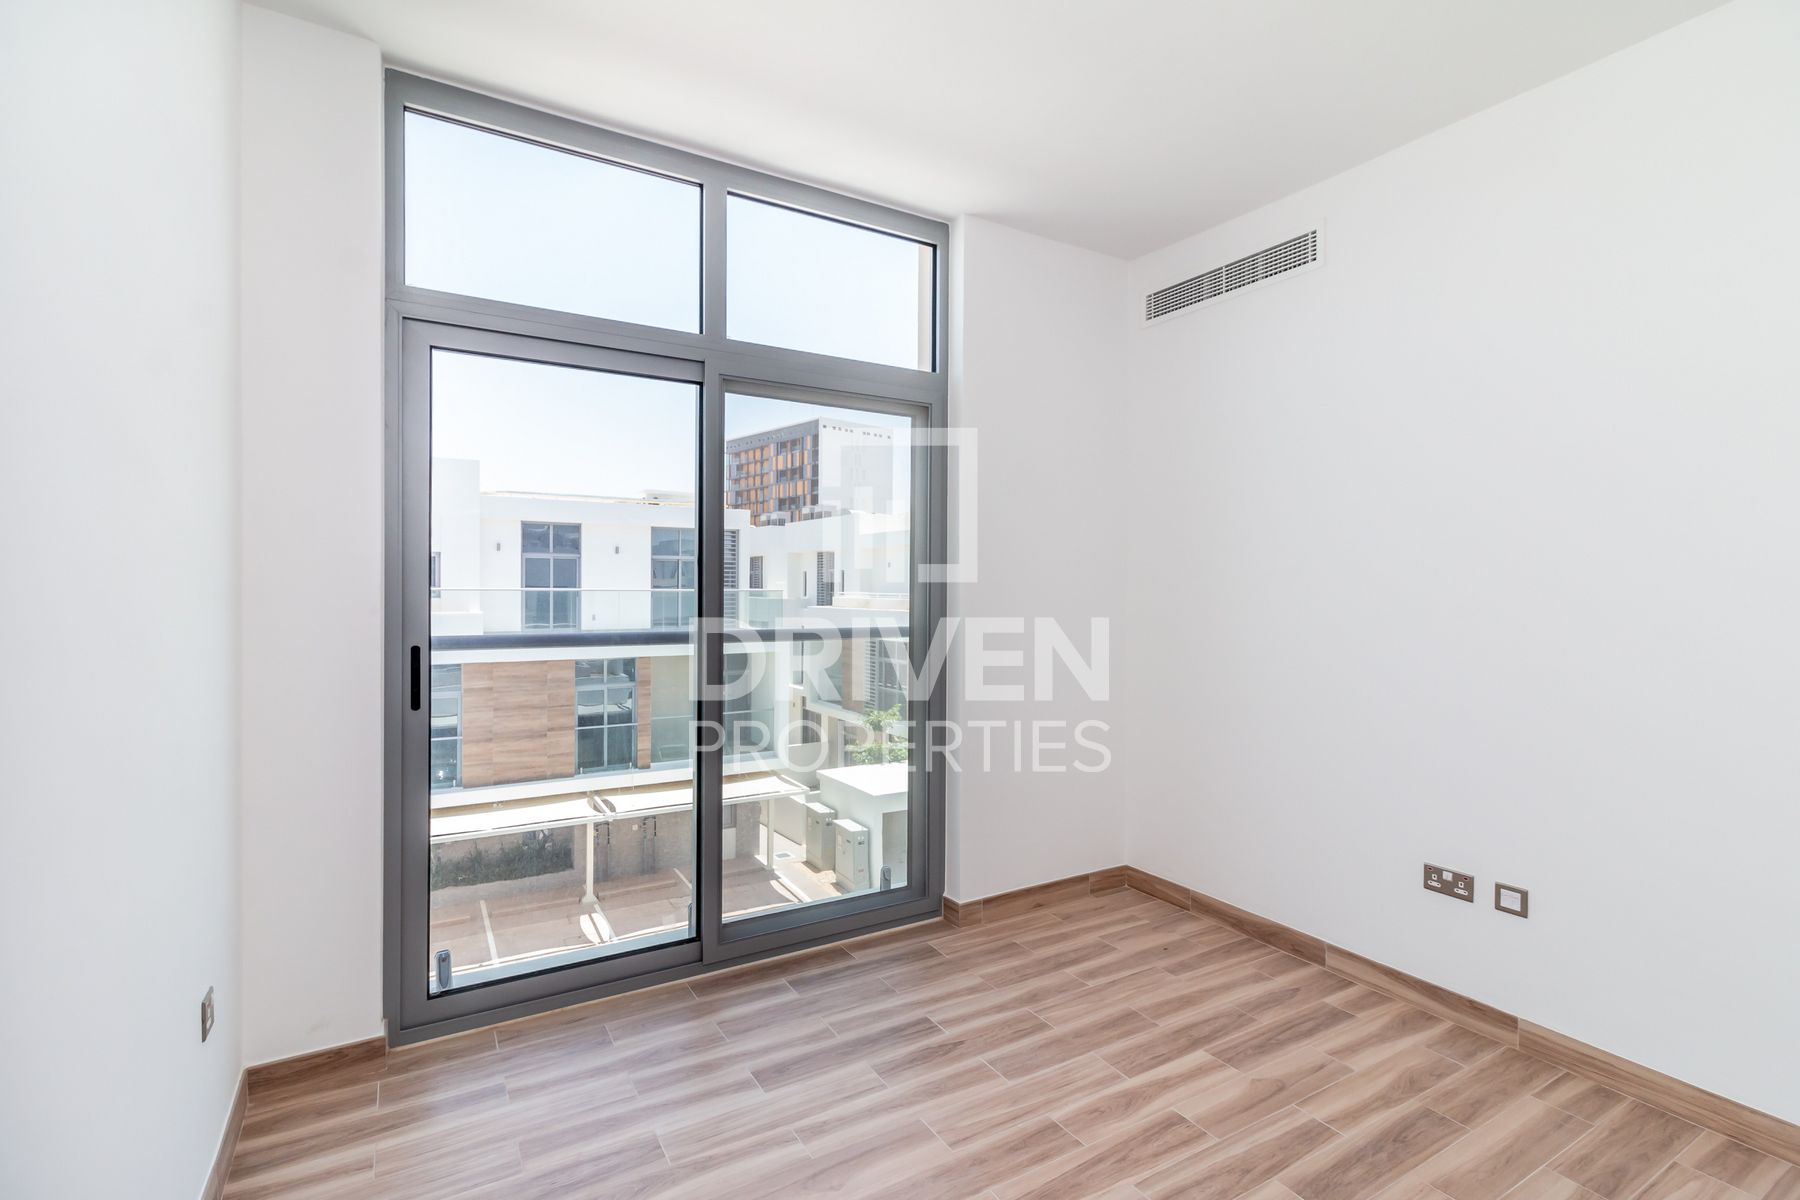 Townhouse for Rent in The Pulse, Dubai South (Dubai World Central)